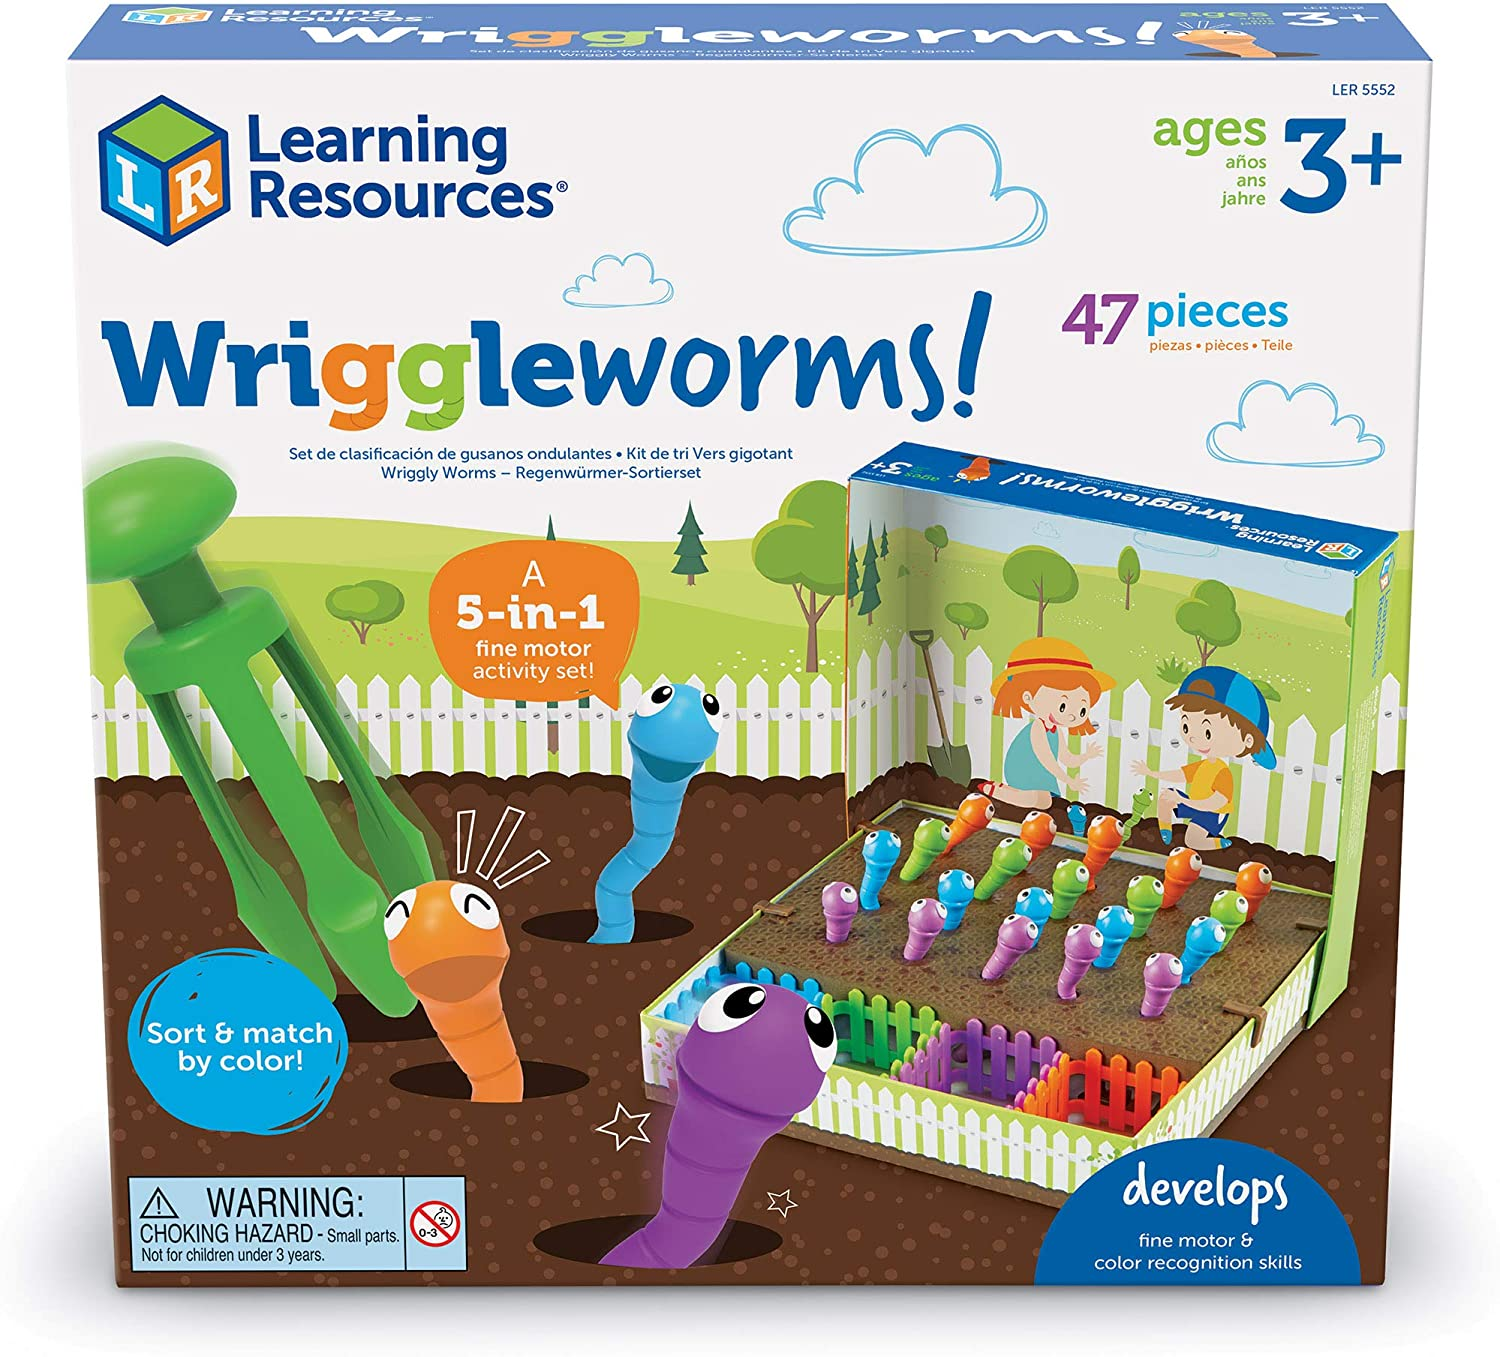 Wriggleworms!